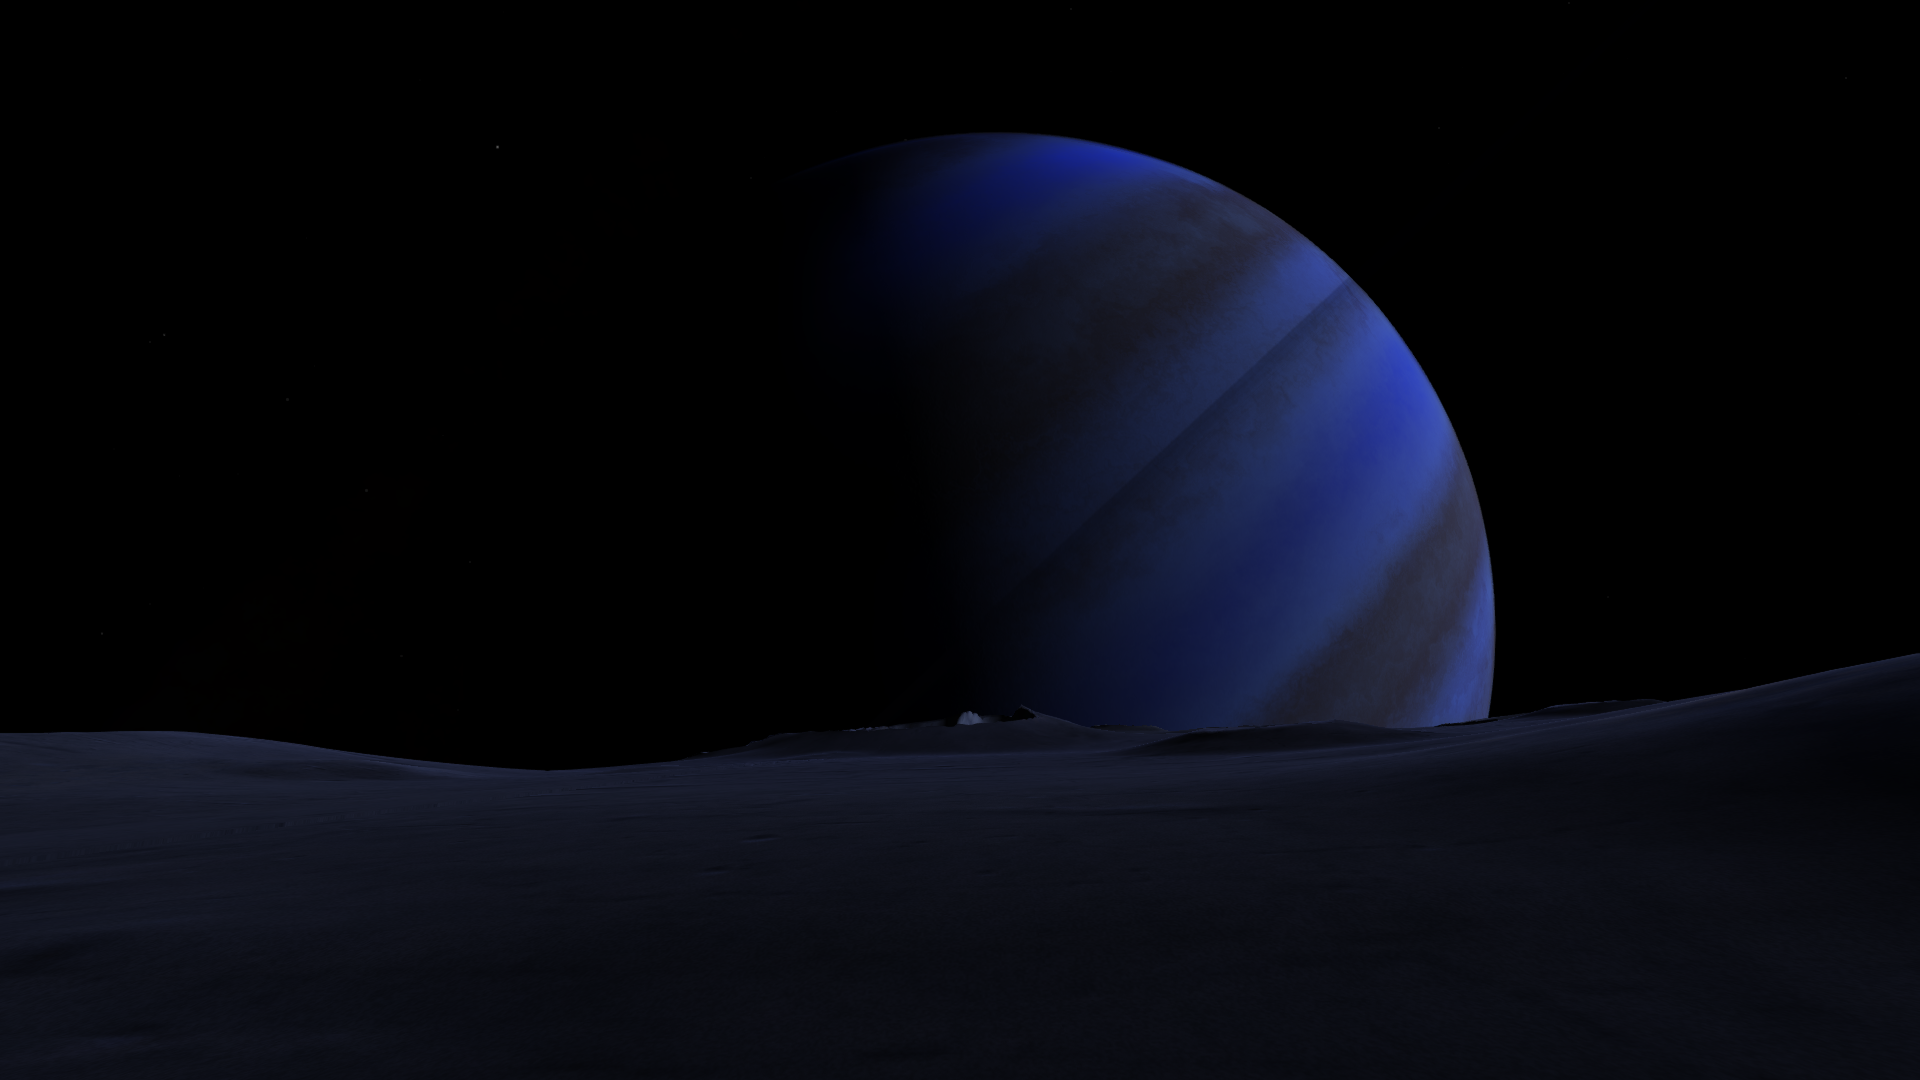 Giant Planets Over The Ocean HD Wallpaper